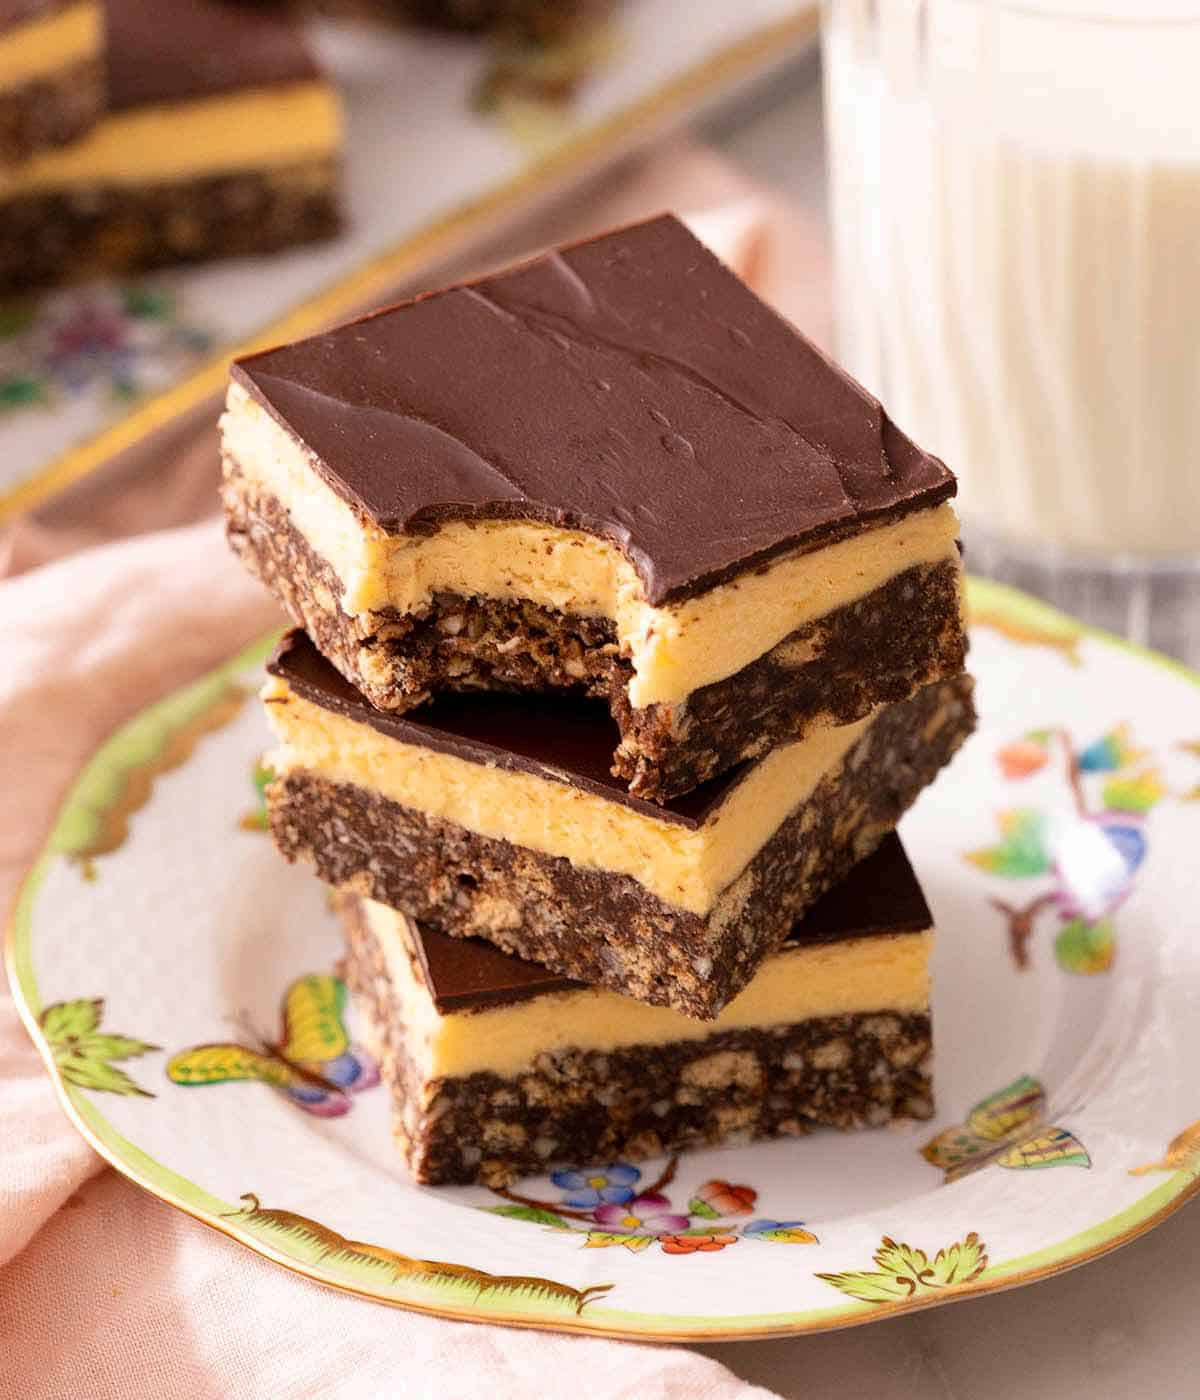 A stack of Nanaimo bars on a plate and one with a bite out